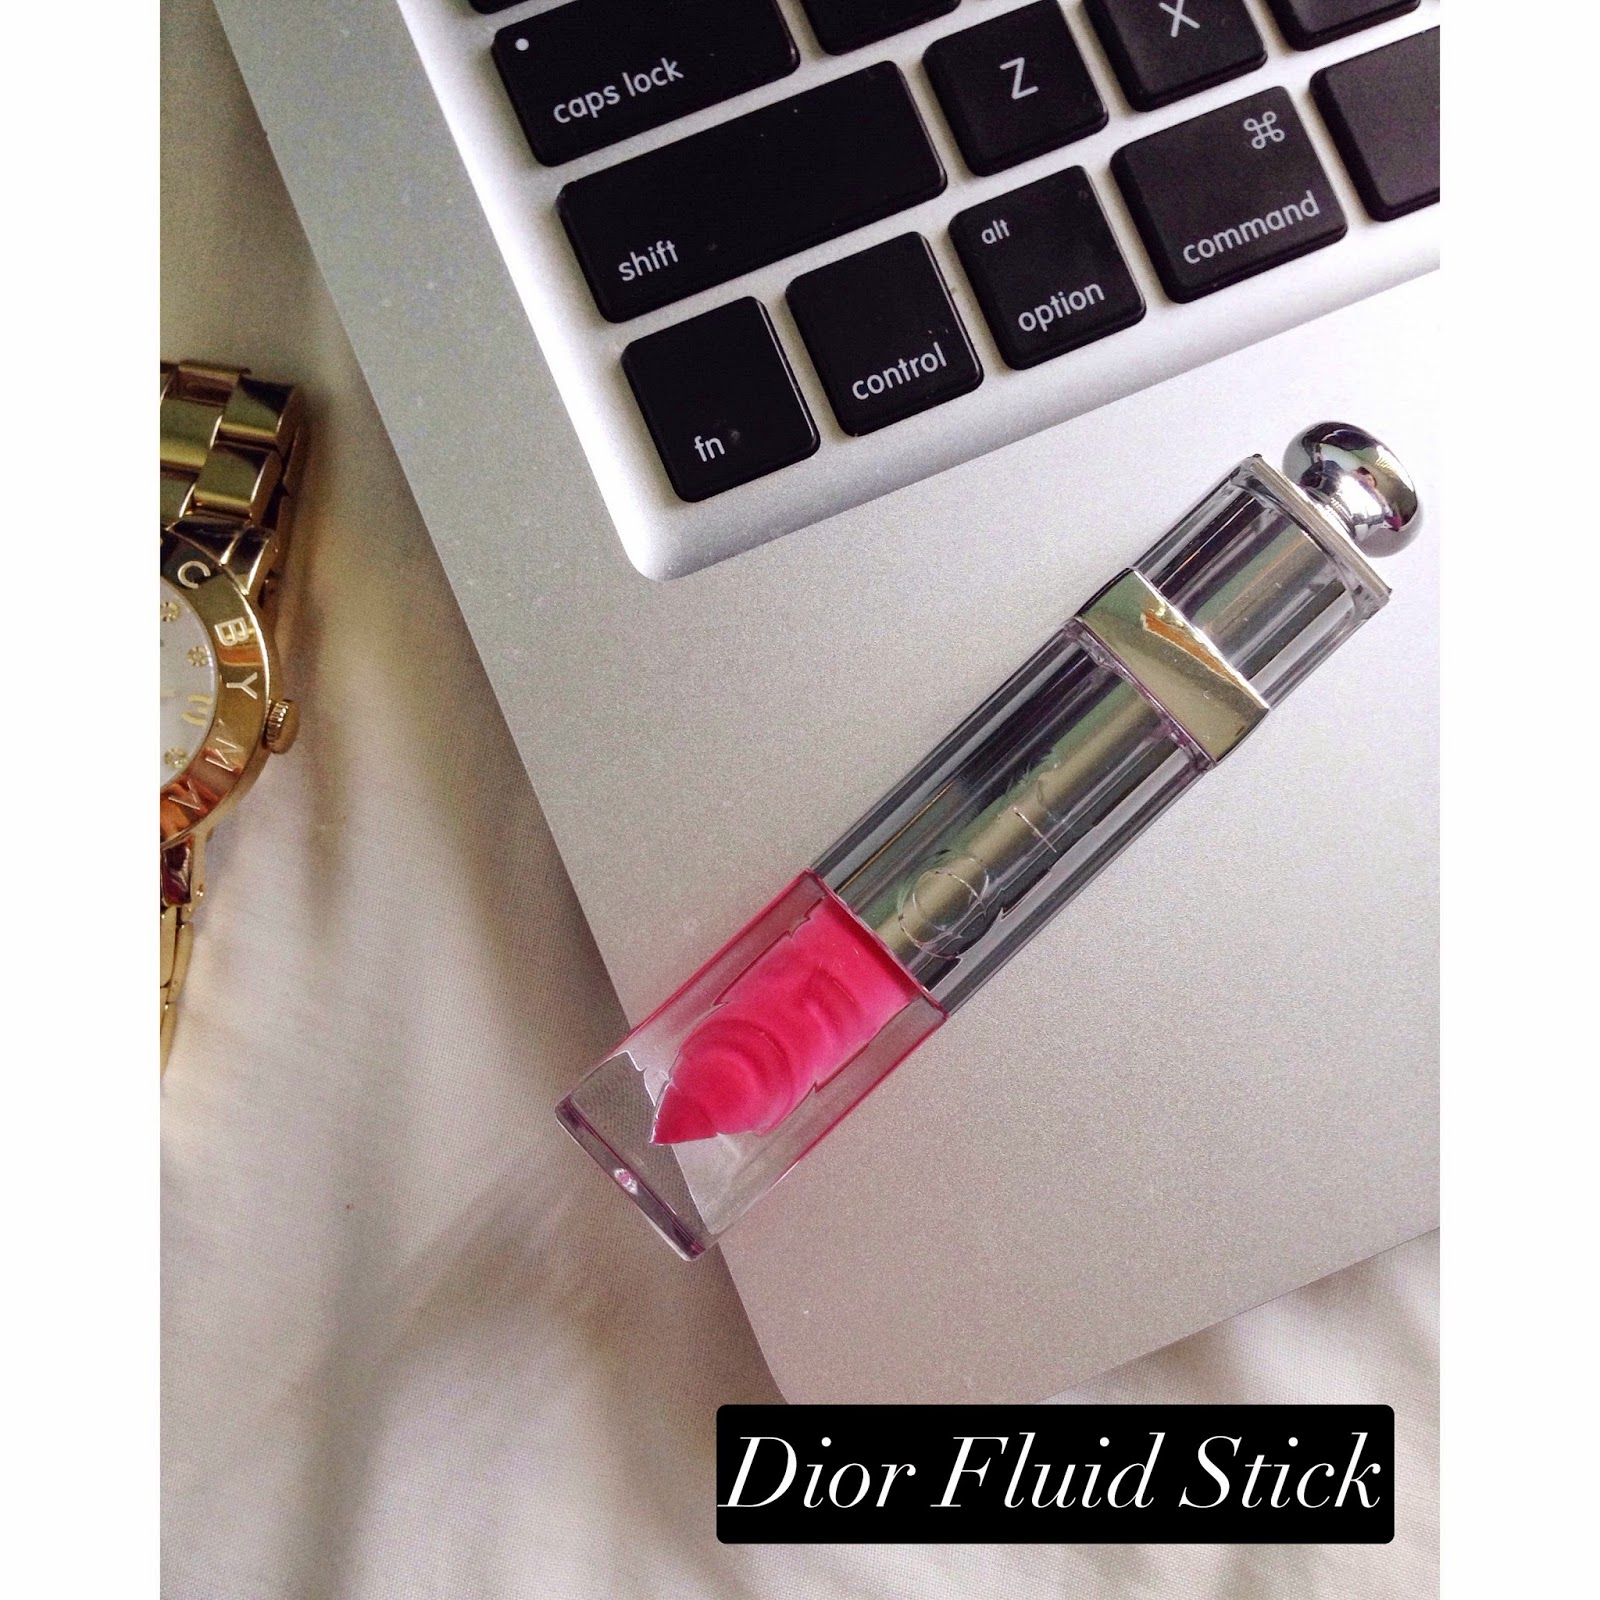 Review Dior Fluid Stick Beauty Makeup